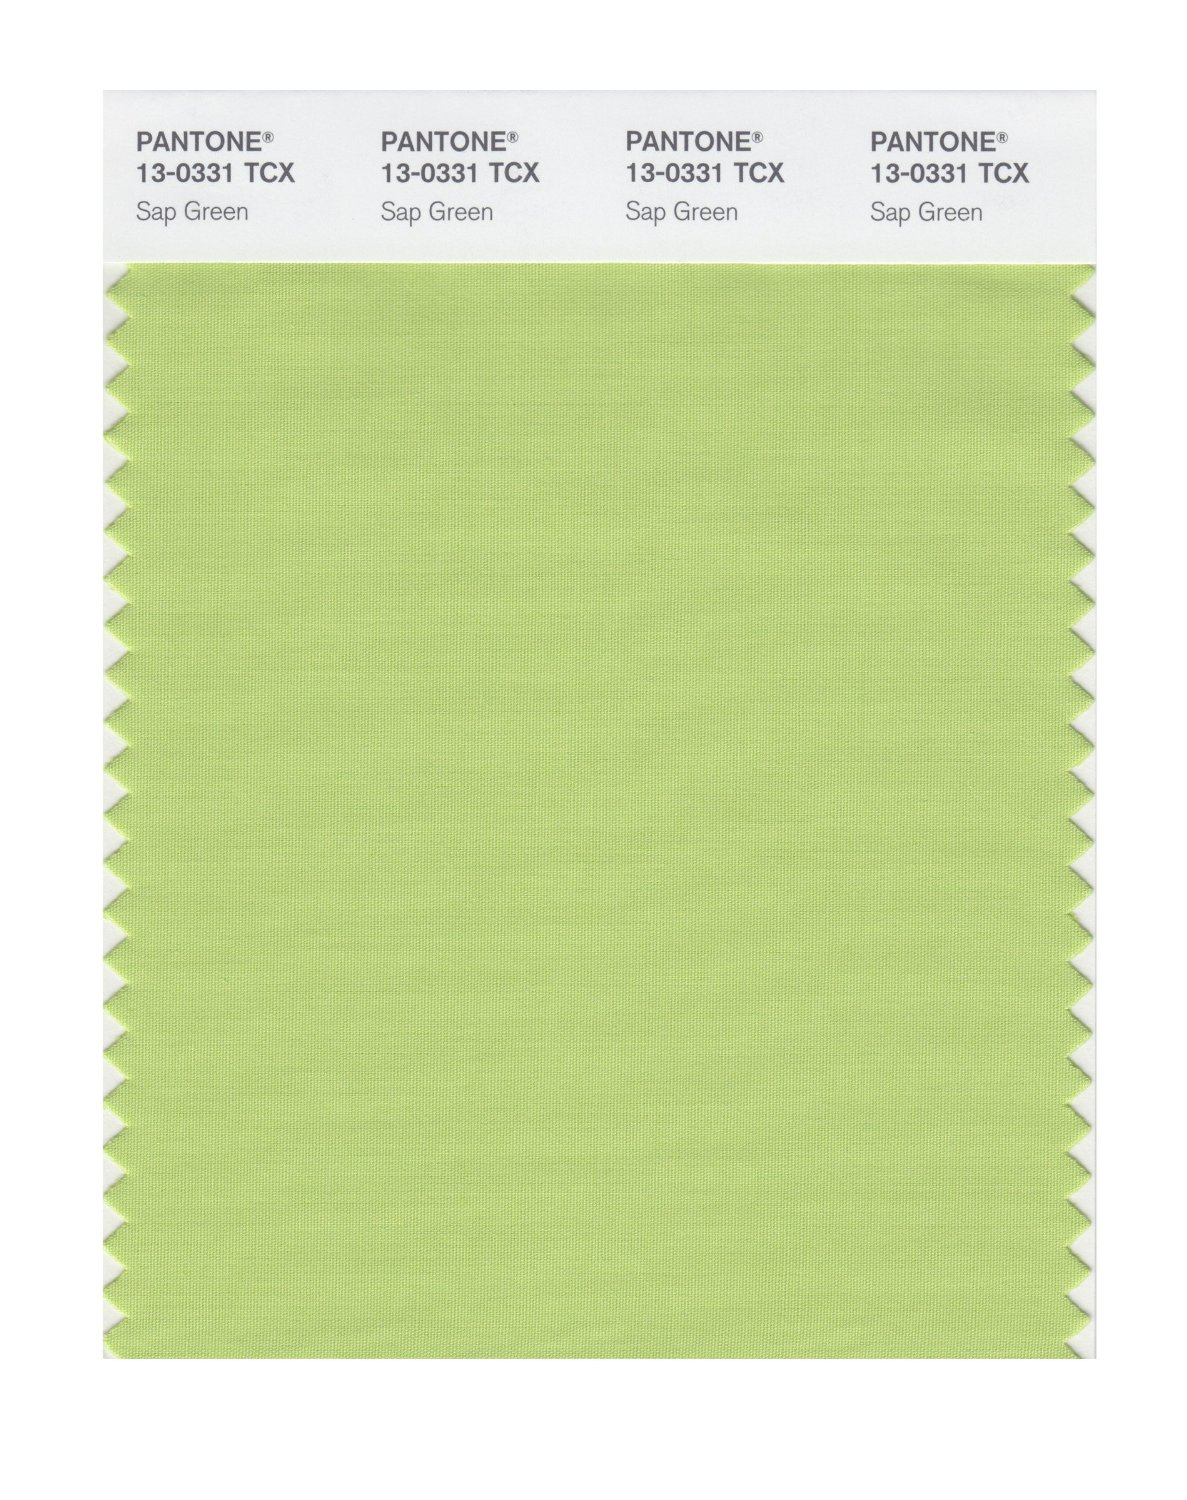 Pantone Smart Swatch 13-0331 Sap Green